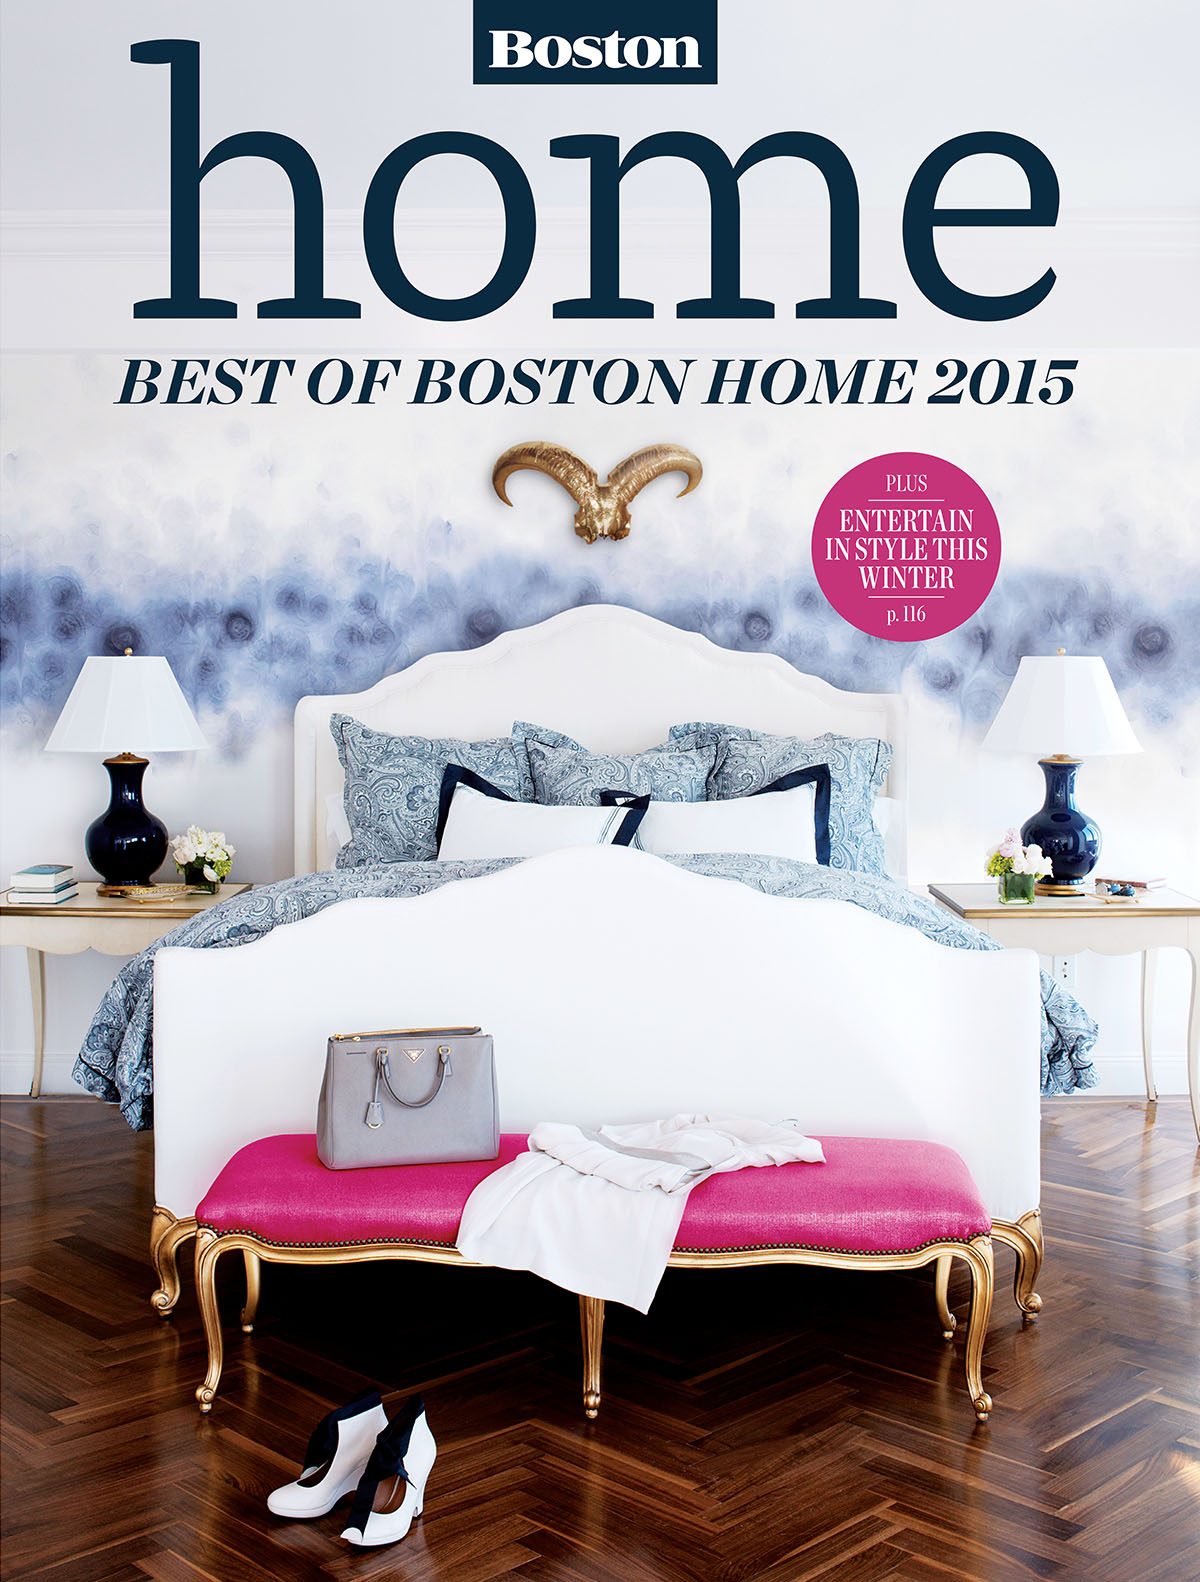 Best of Boston Home 2015 – Boston Magazine